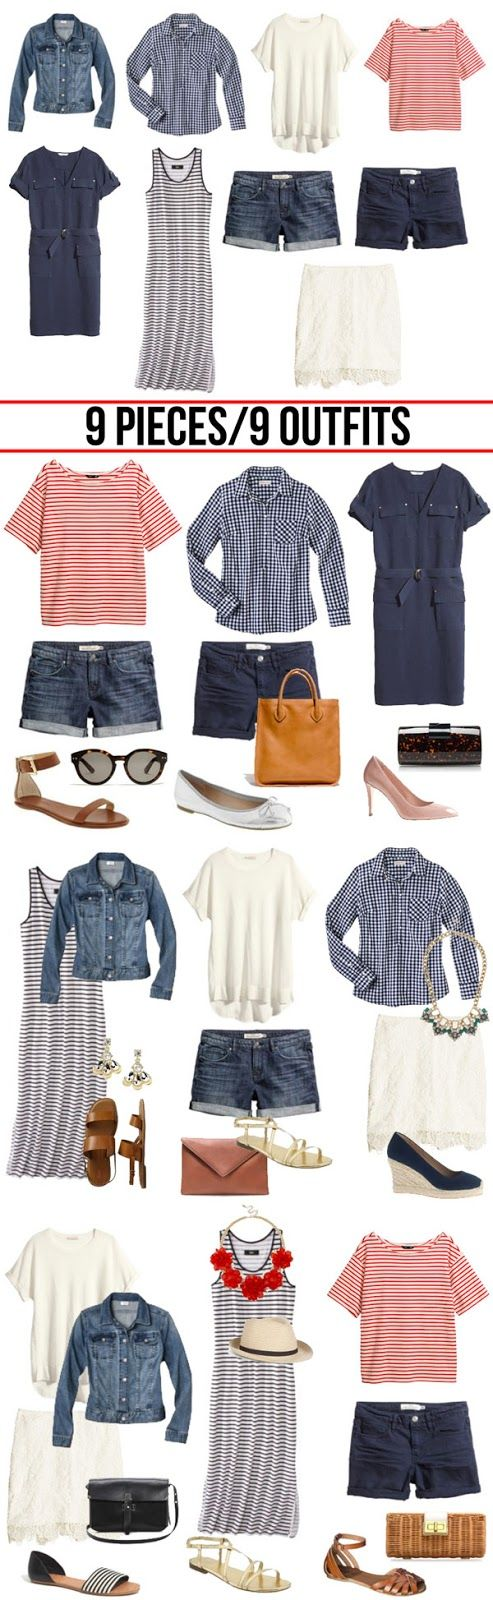 79152a2712bb20d66a1b9d3572cc2f6c - Summer vacations in Michigan 10 best outfits to wear